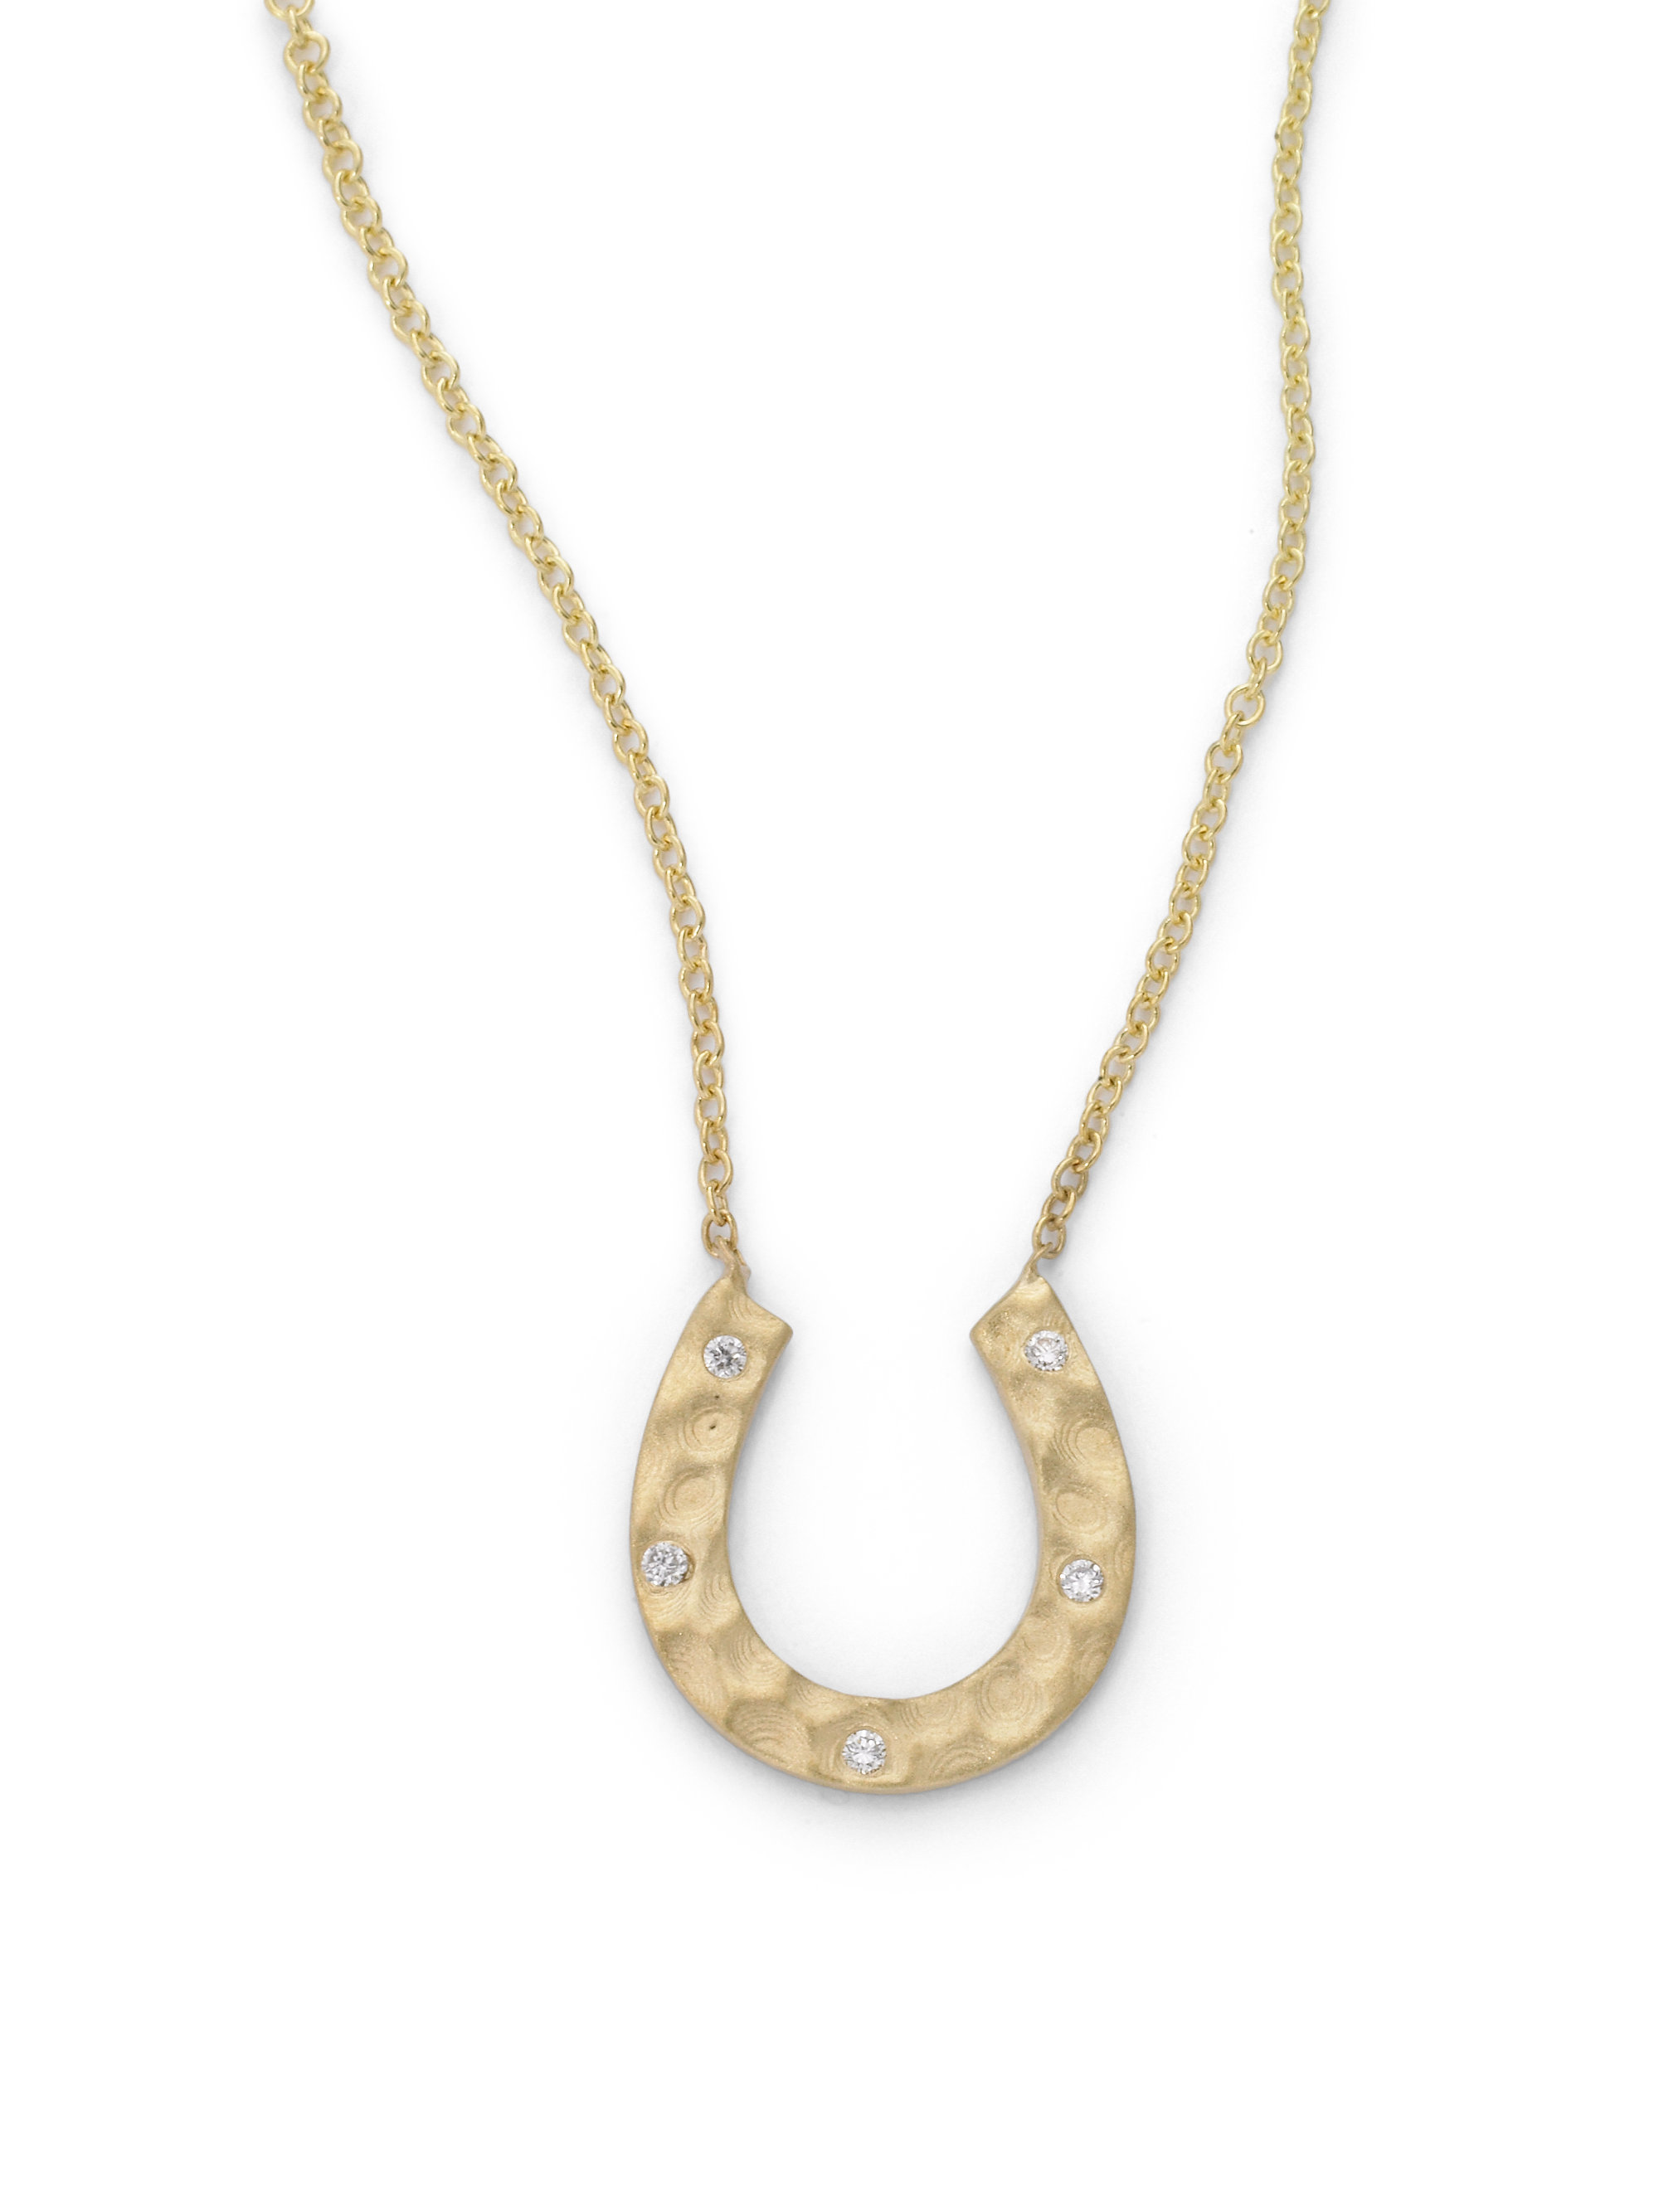 kc designs hammered horseshoe pendant necklace in